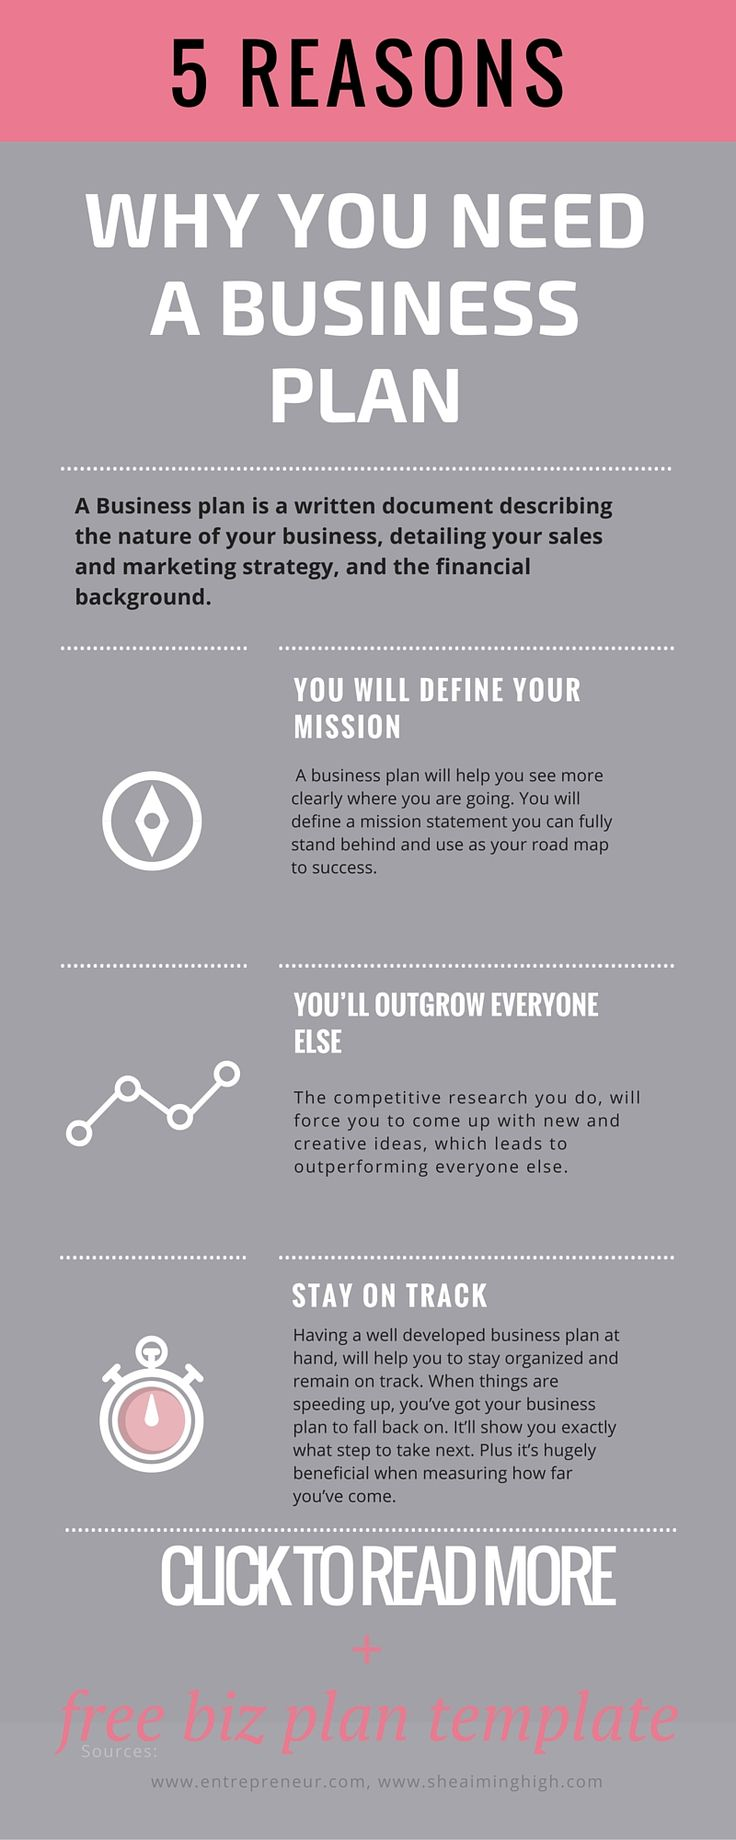 5 Reasons Why You Need A Business Plan